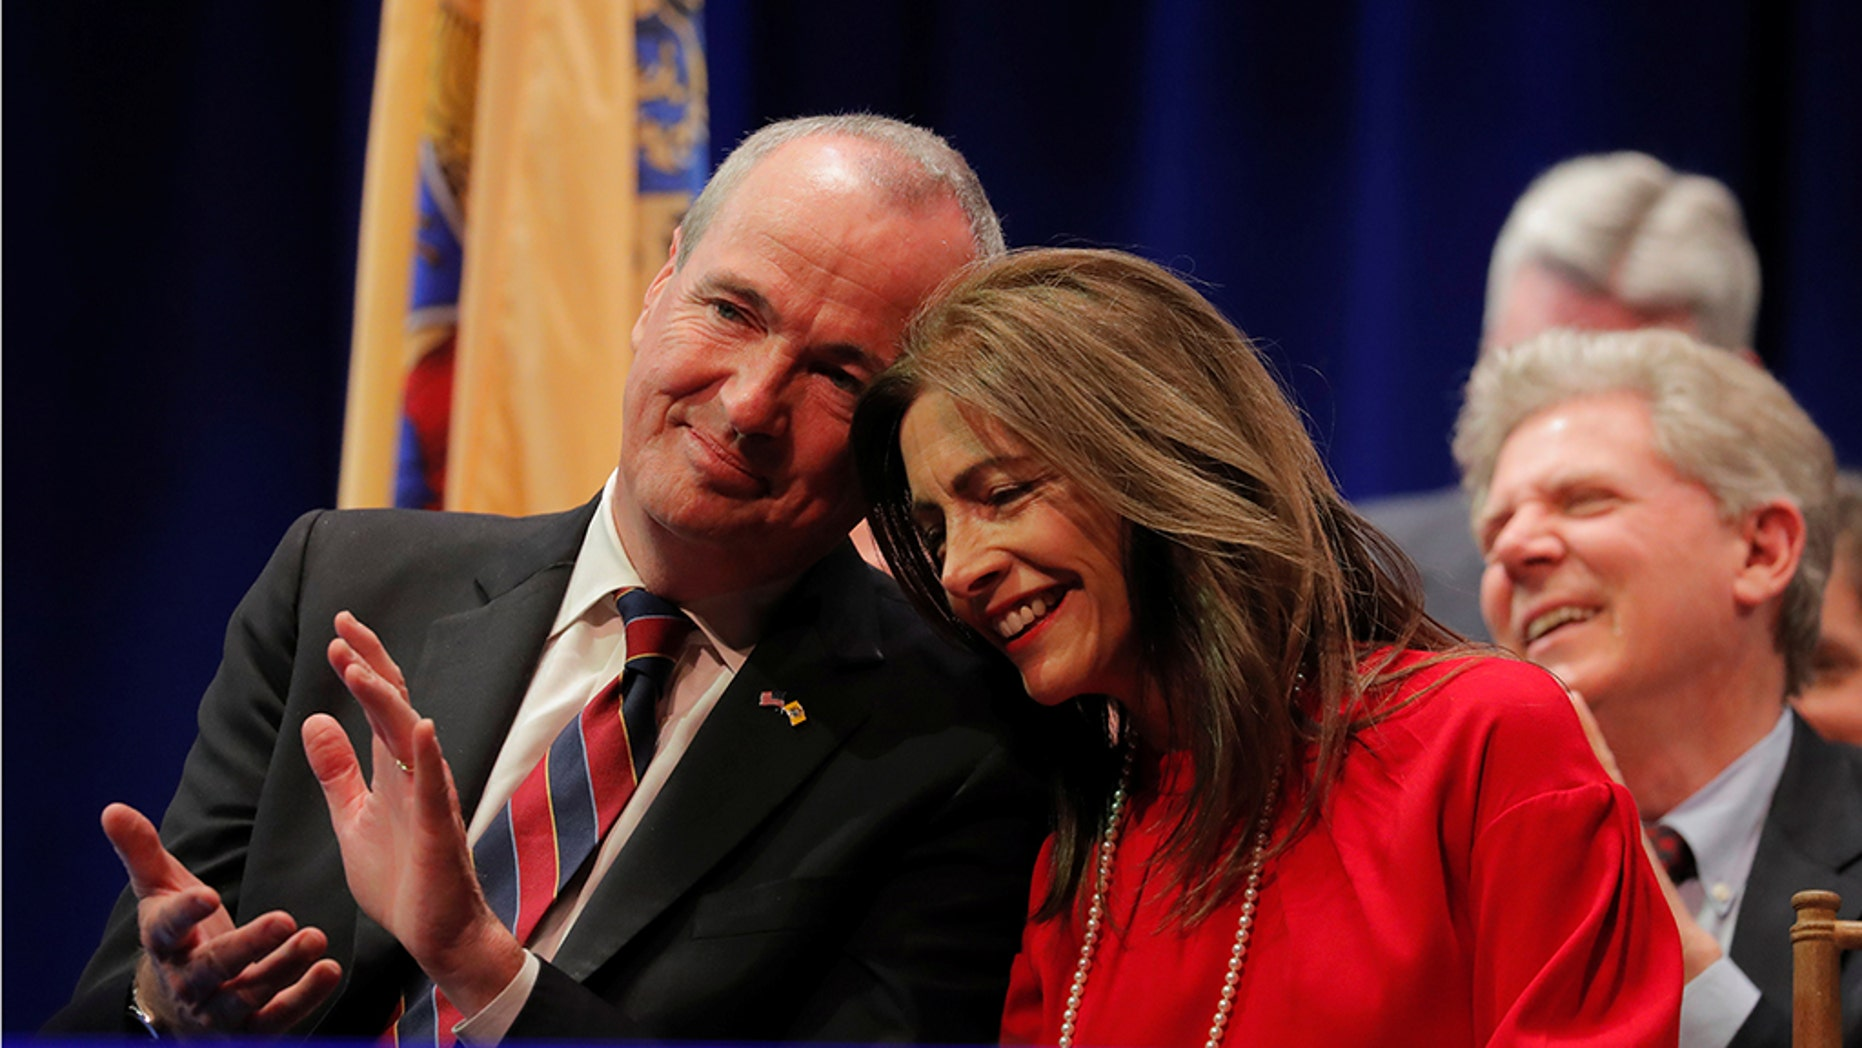 Gov. Phil Murphy, D-N.J., reportedly spent nearly $13,000 to create an office for his wife, Tammy, who doesn't hold any political office.